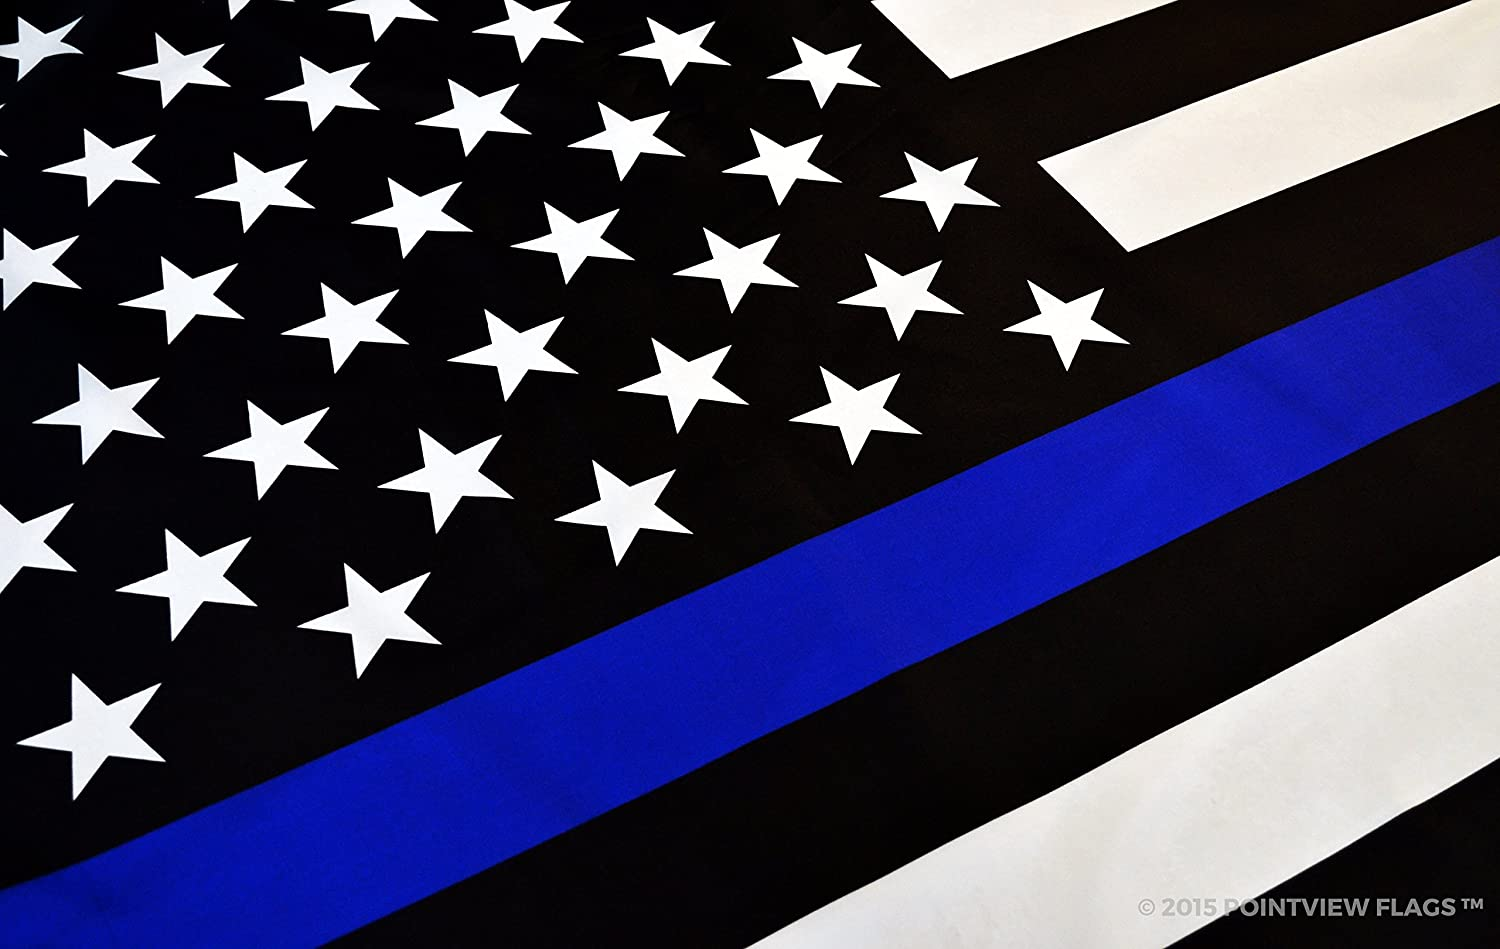 Amazon thin blue line american flag 3 x 5 ft with grommets amazon thin blue line american flag 3 x 5 ft with grommets garden outdoor biocorpaavc Image collections